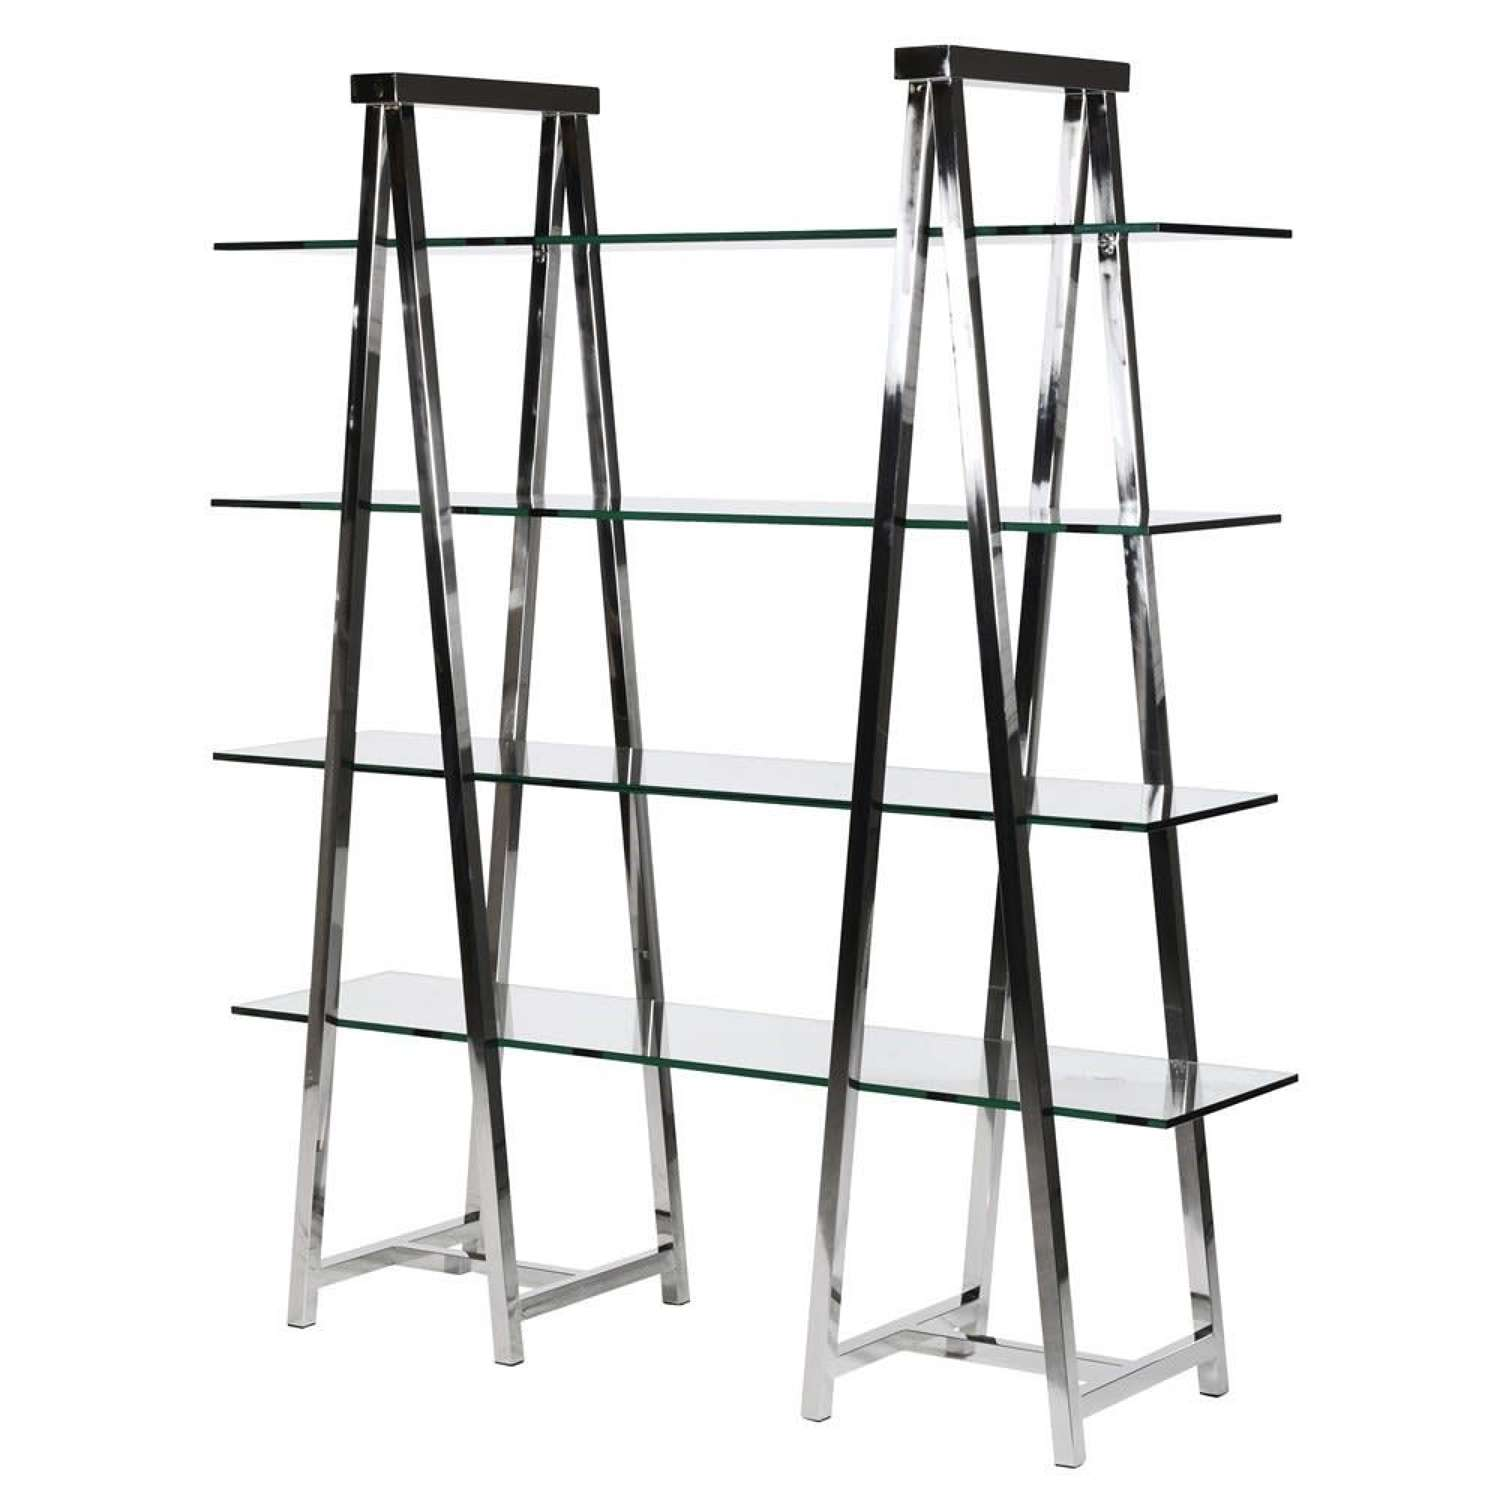 Double Trestle Unit - Stainless Steel and Glass